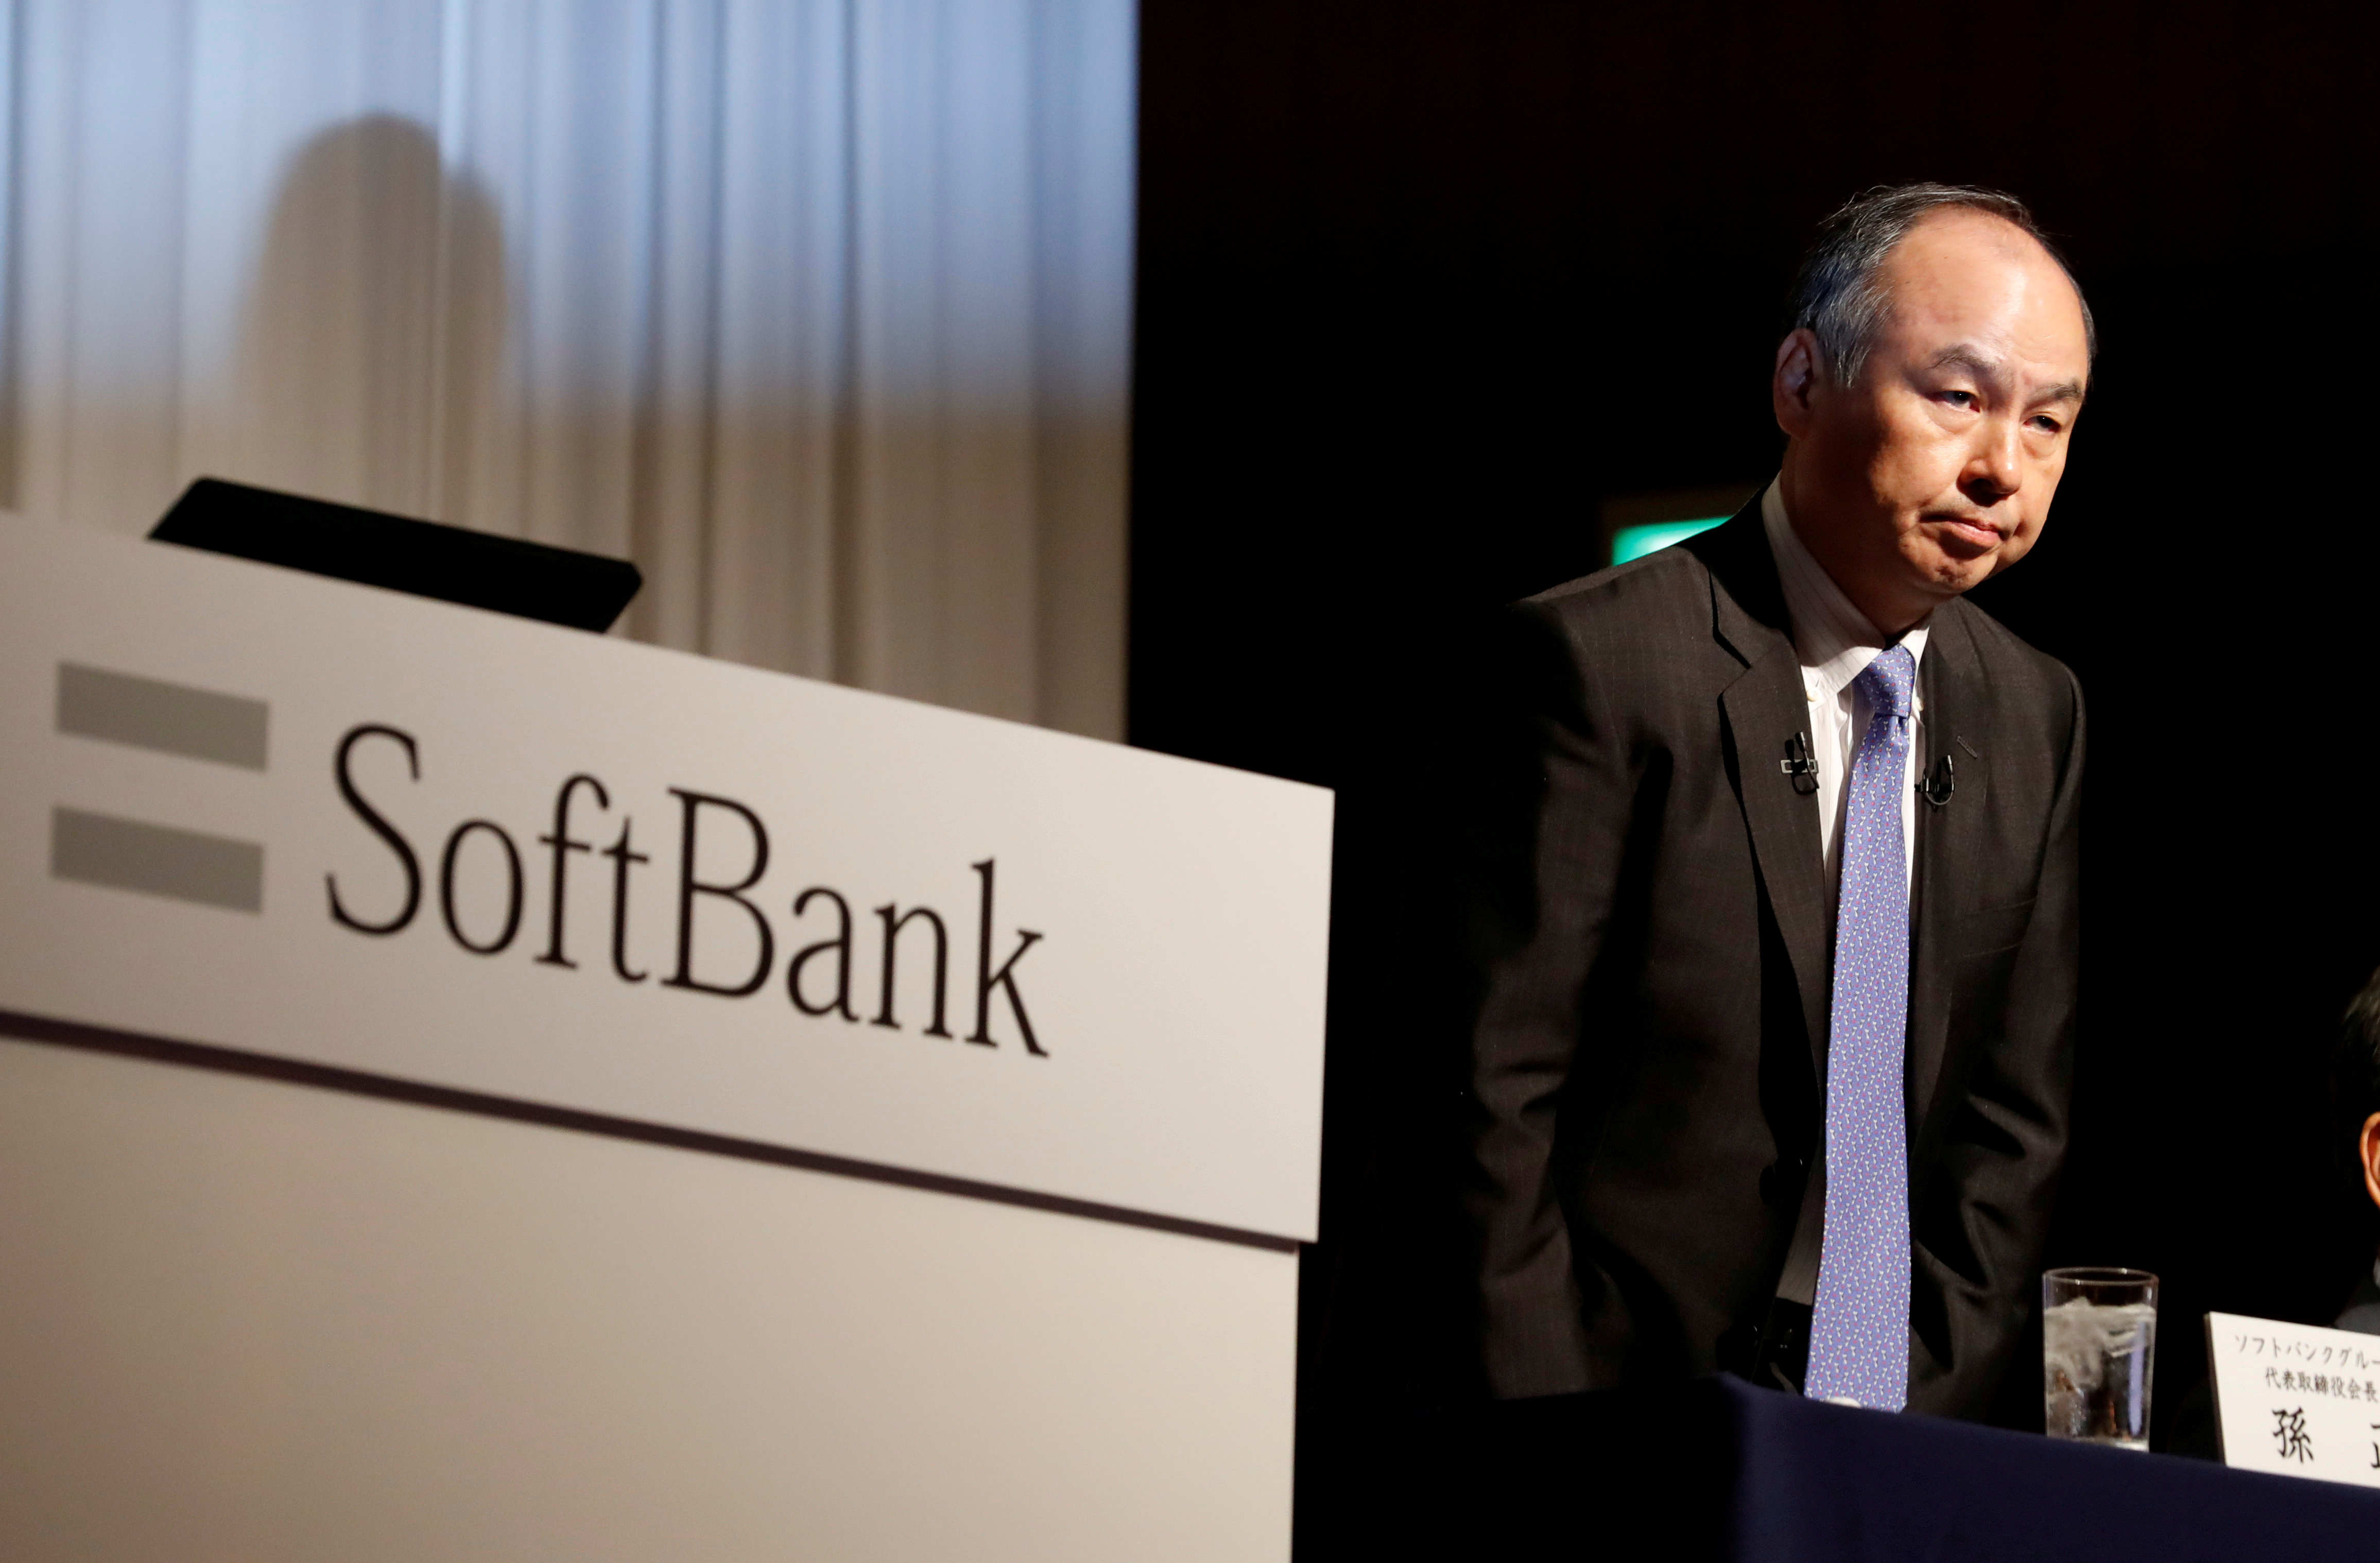 Japan's SoftBank Group Corp Chief Executive Masayoshi Son attends a news conference in Tokyo, Japan, Nov. 5, 2018. REUTERS/Kim Kyung-Hoon/File Photo